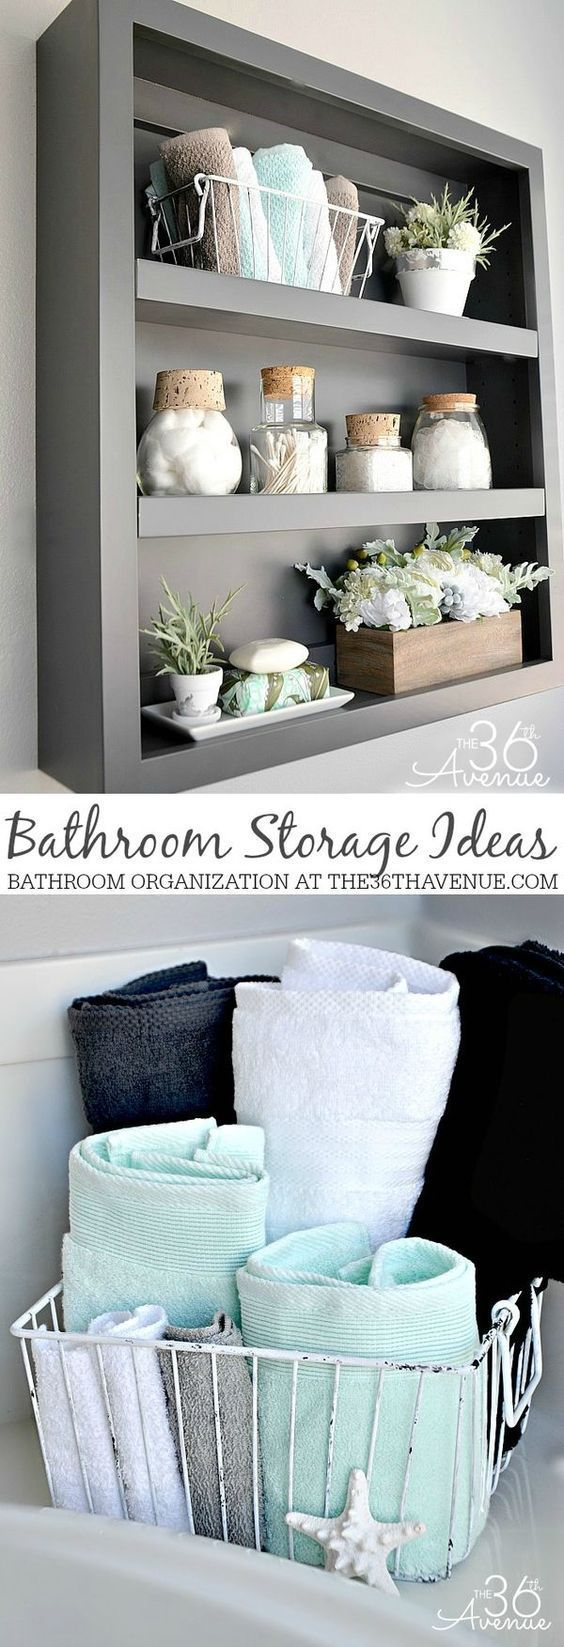 Best 25+ Spa bathroom decor ideas on Pinterest | Spa master ...